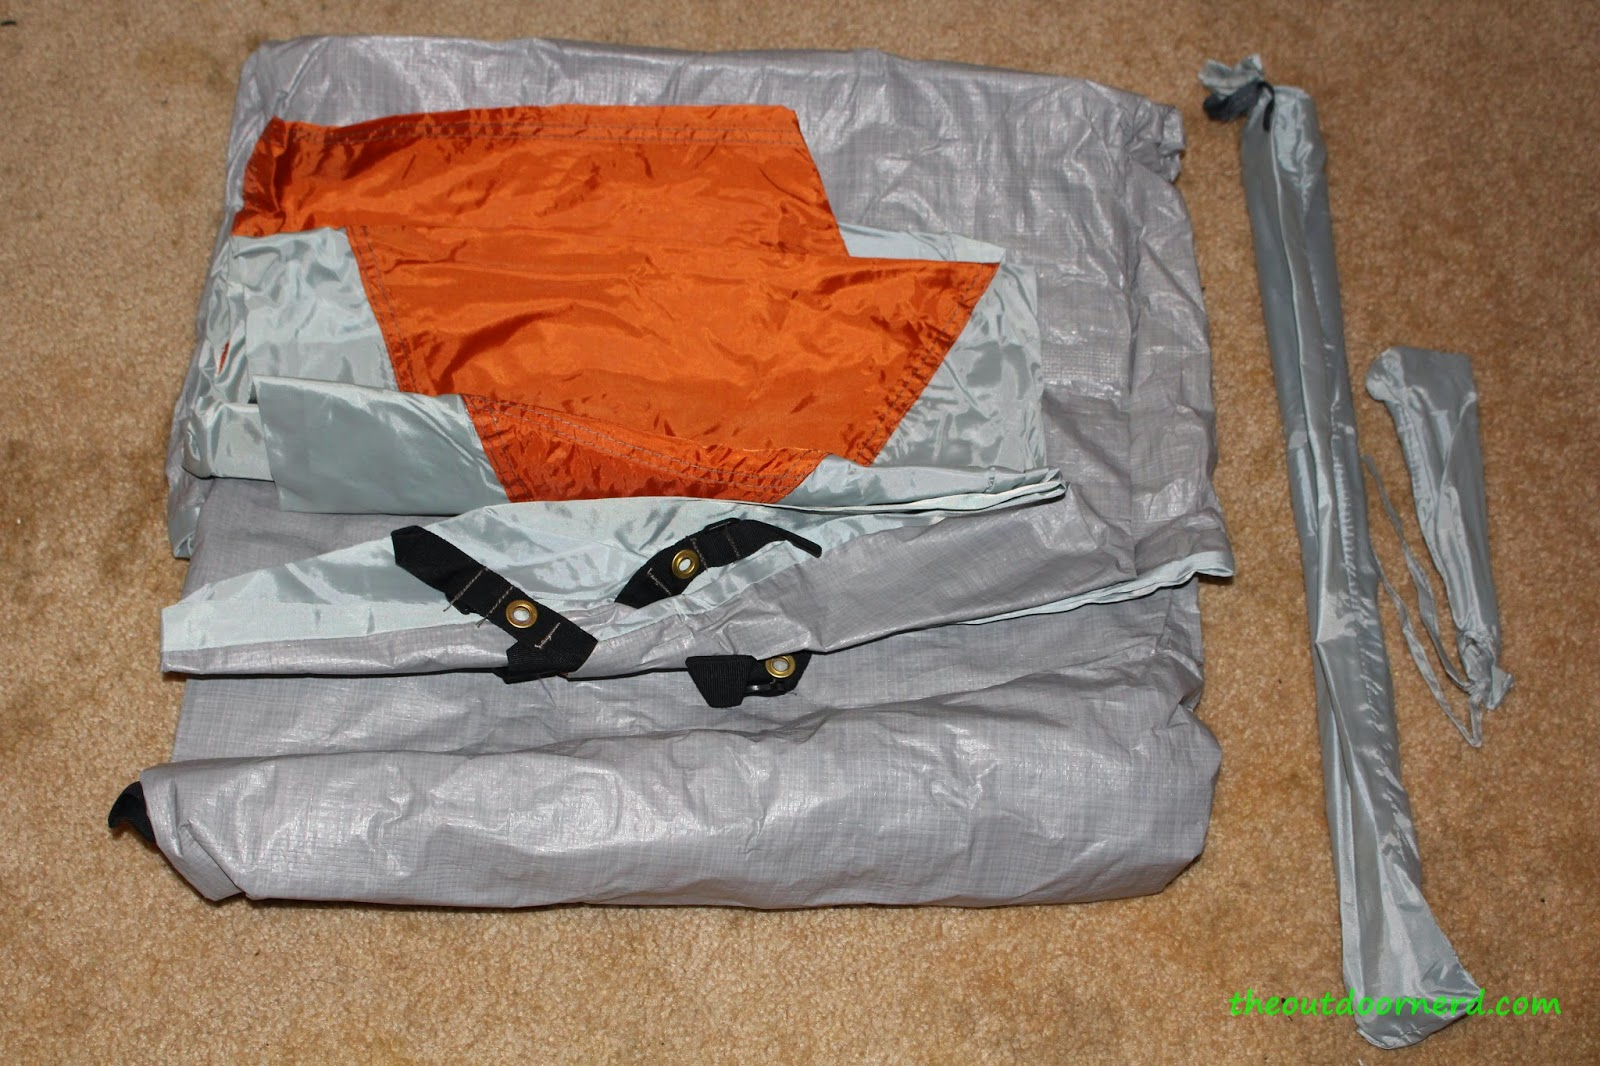 Ozark Trail Backpacker's Tent Unpacked